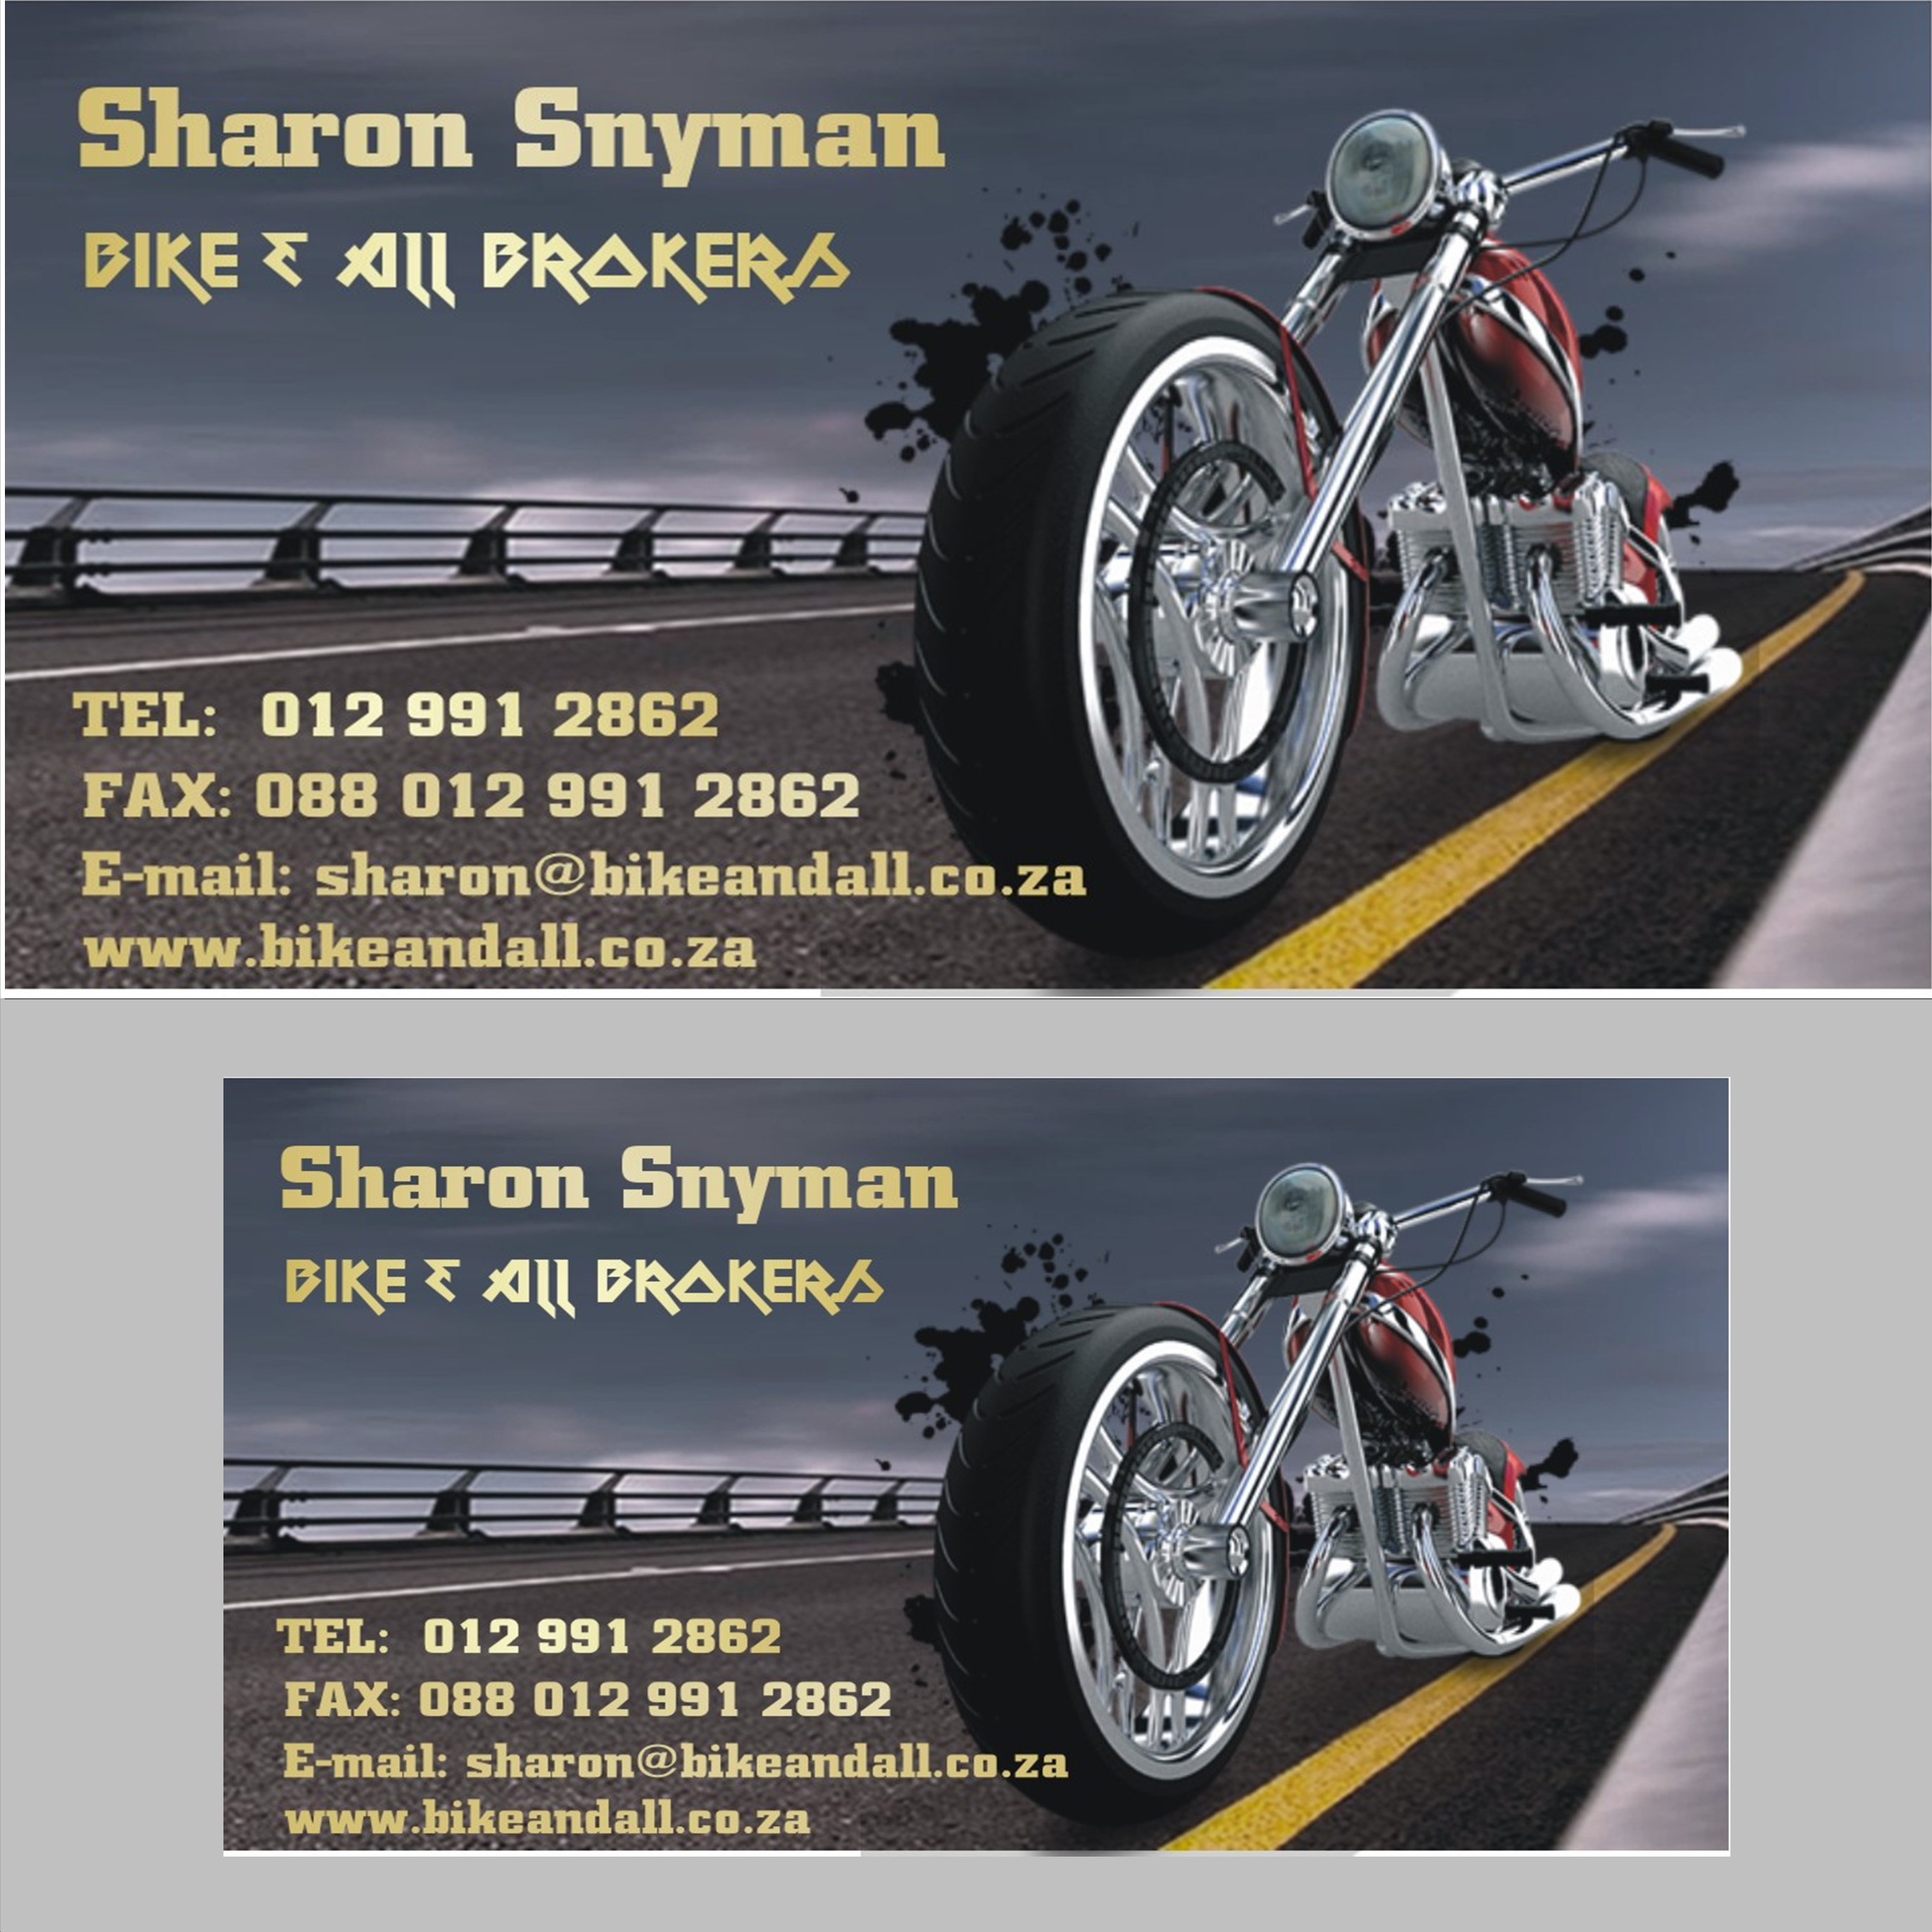 Bike and All Brokers Business Card Design 1